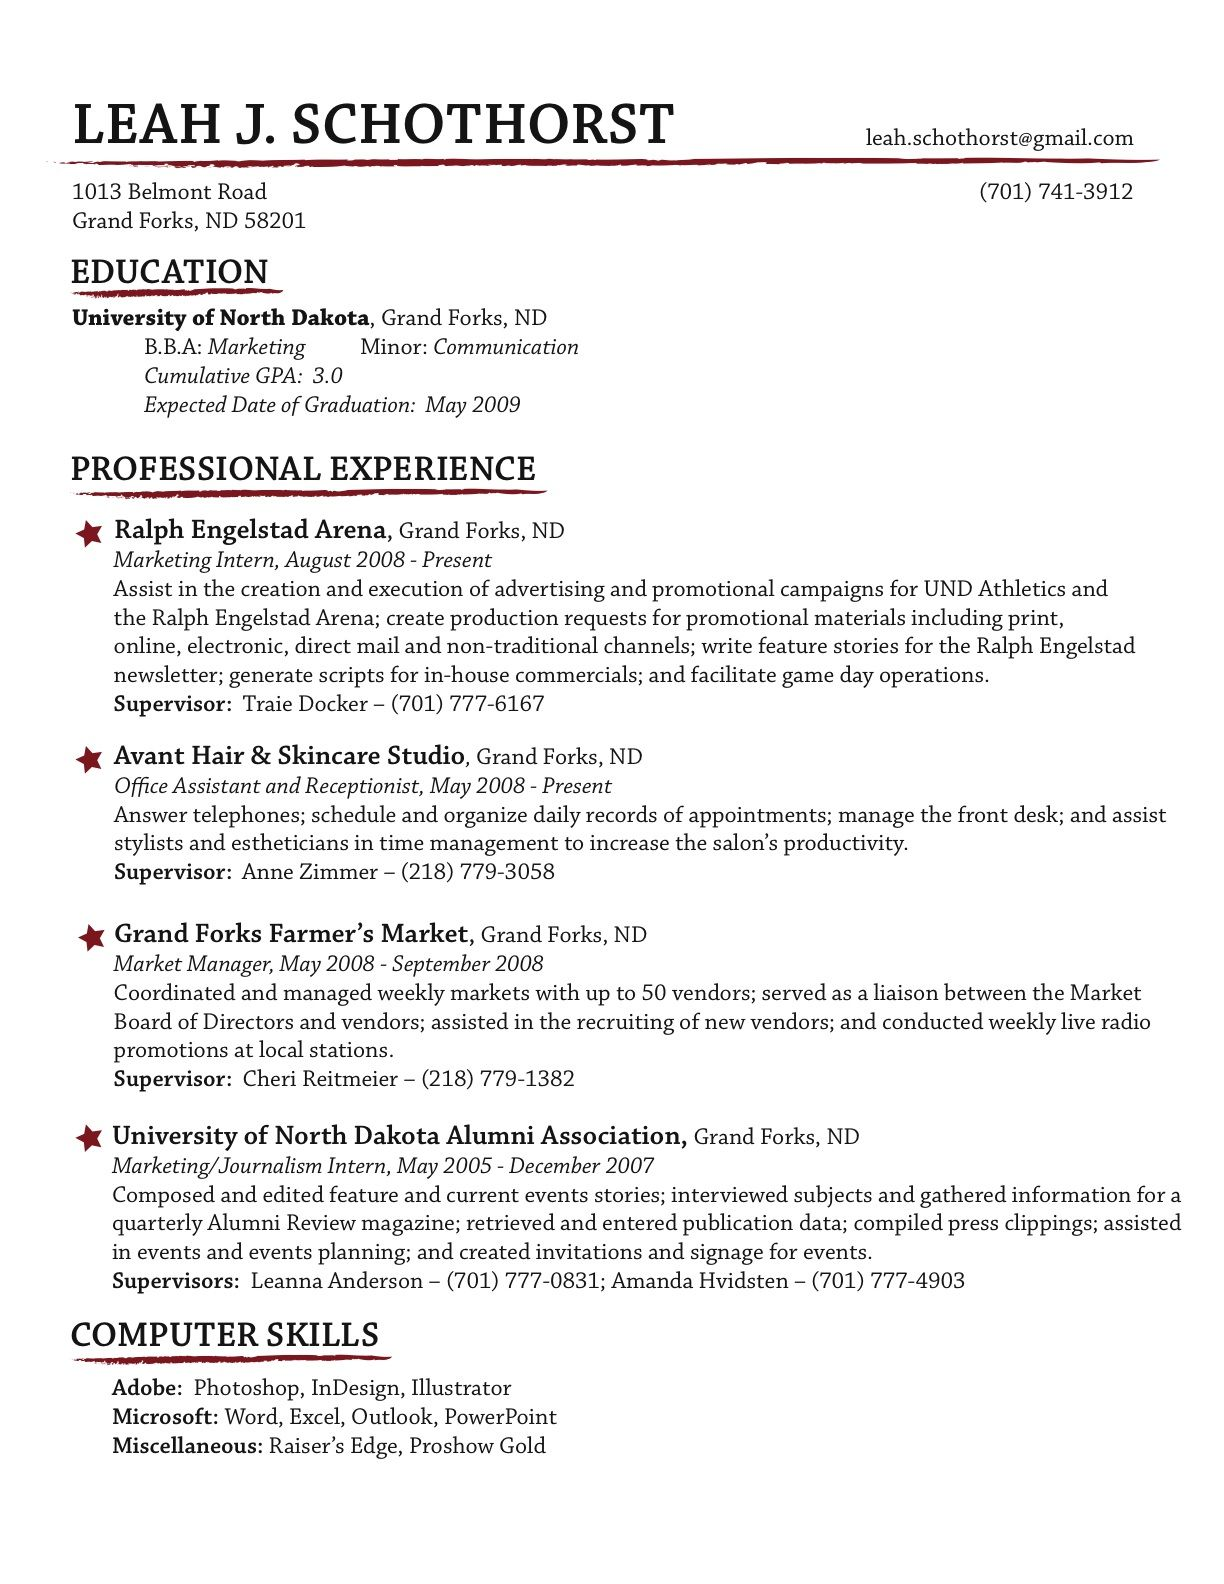 business systems analyst resume sample resume make a resume website cover letter or resume online